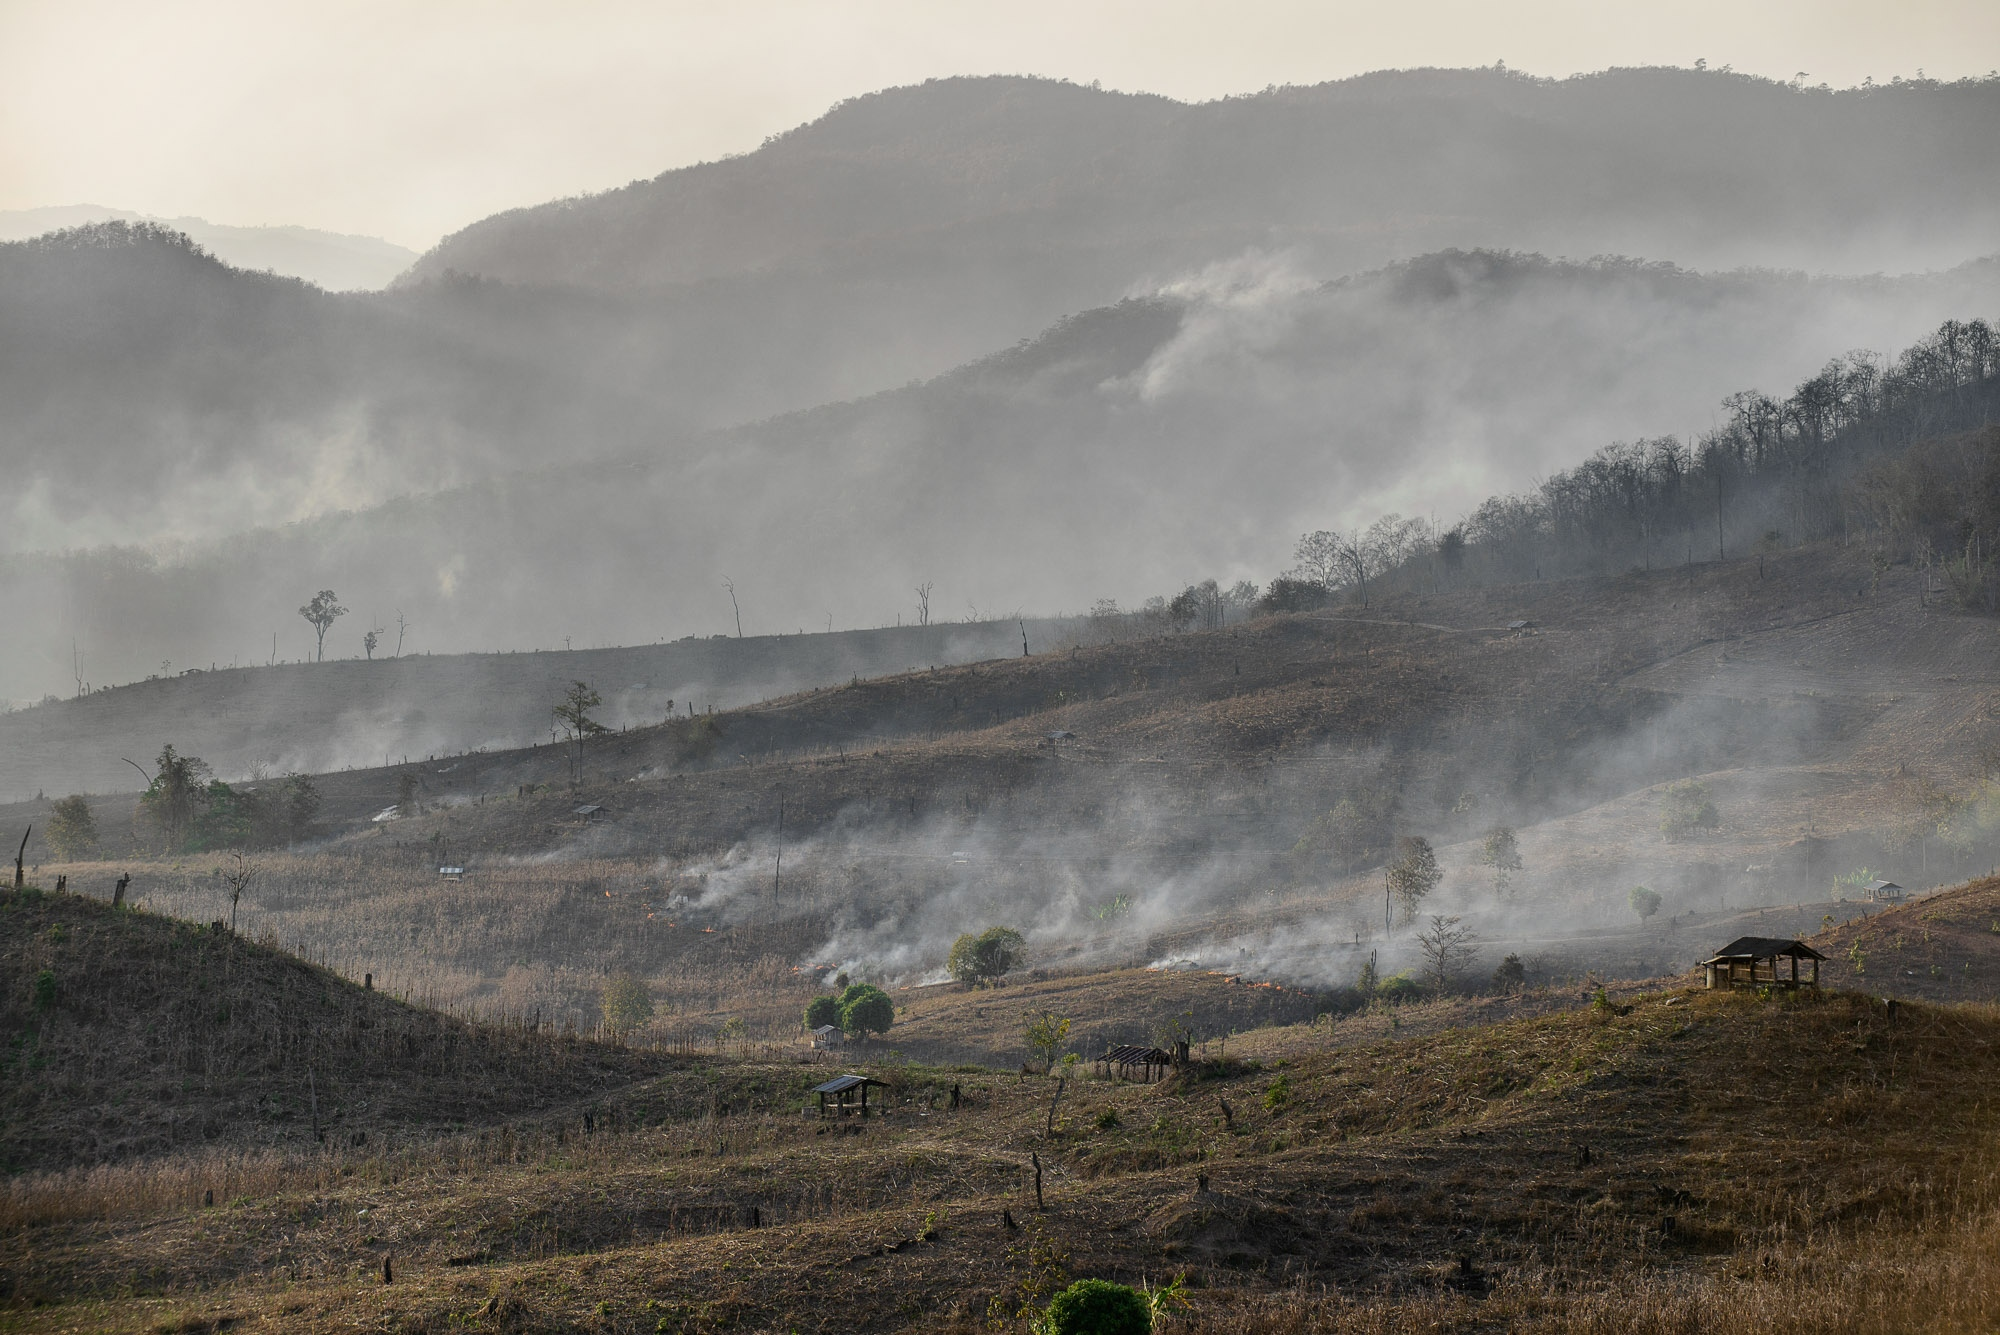 Thousands of acres of forest have been dedicated to mono- cropping system. The areas burned by wildfire each year appeared to start after crop harvesting. Stubble burning is a major reason for heavy smog and air pollution.